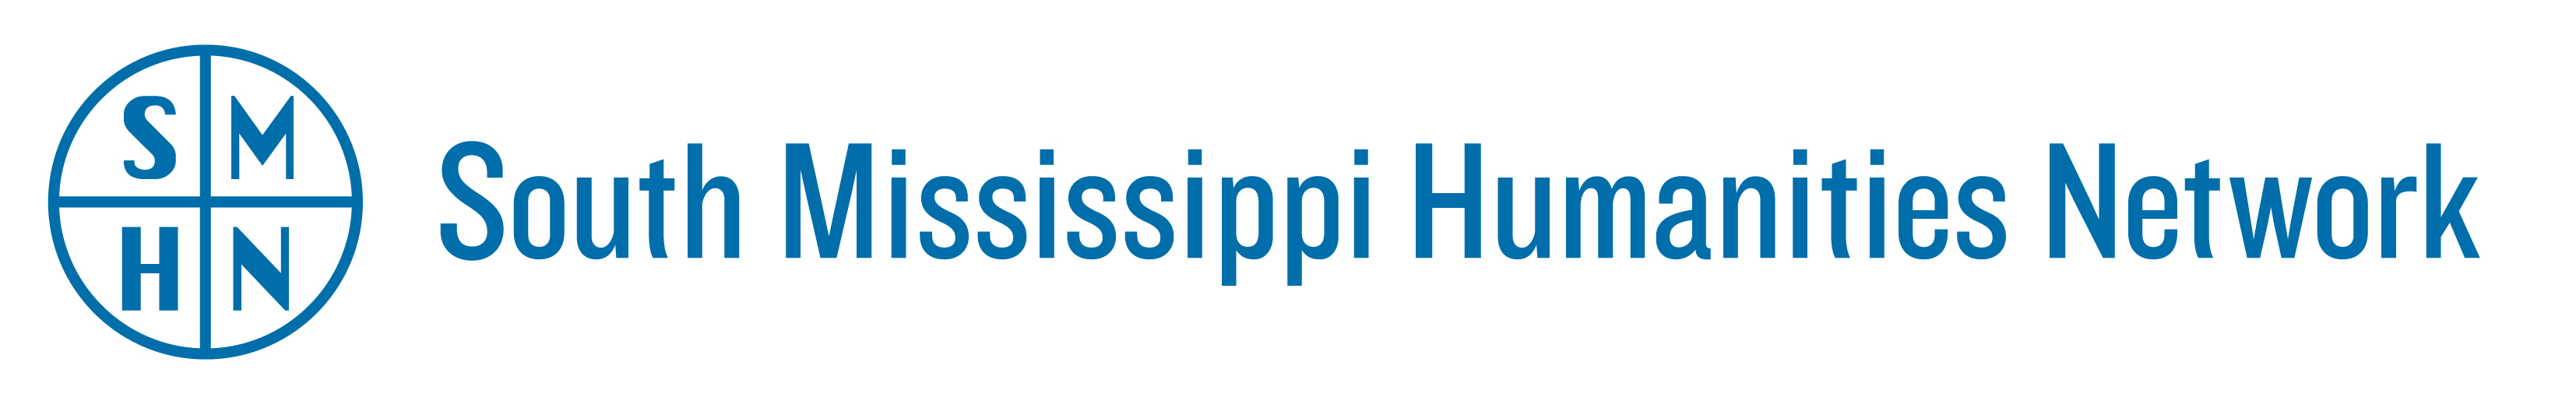 South Mississippi Humanities Network